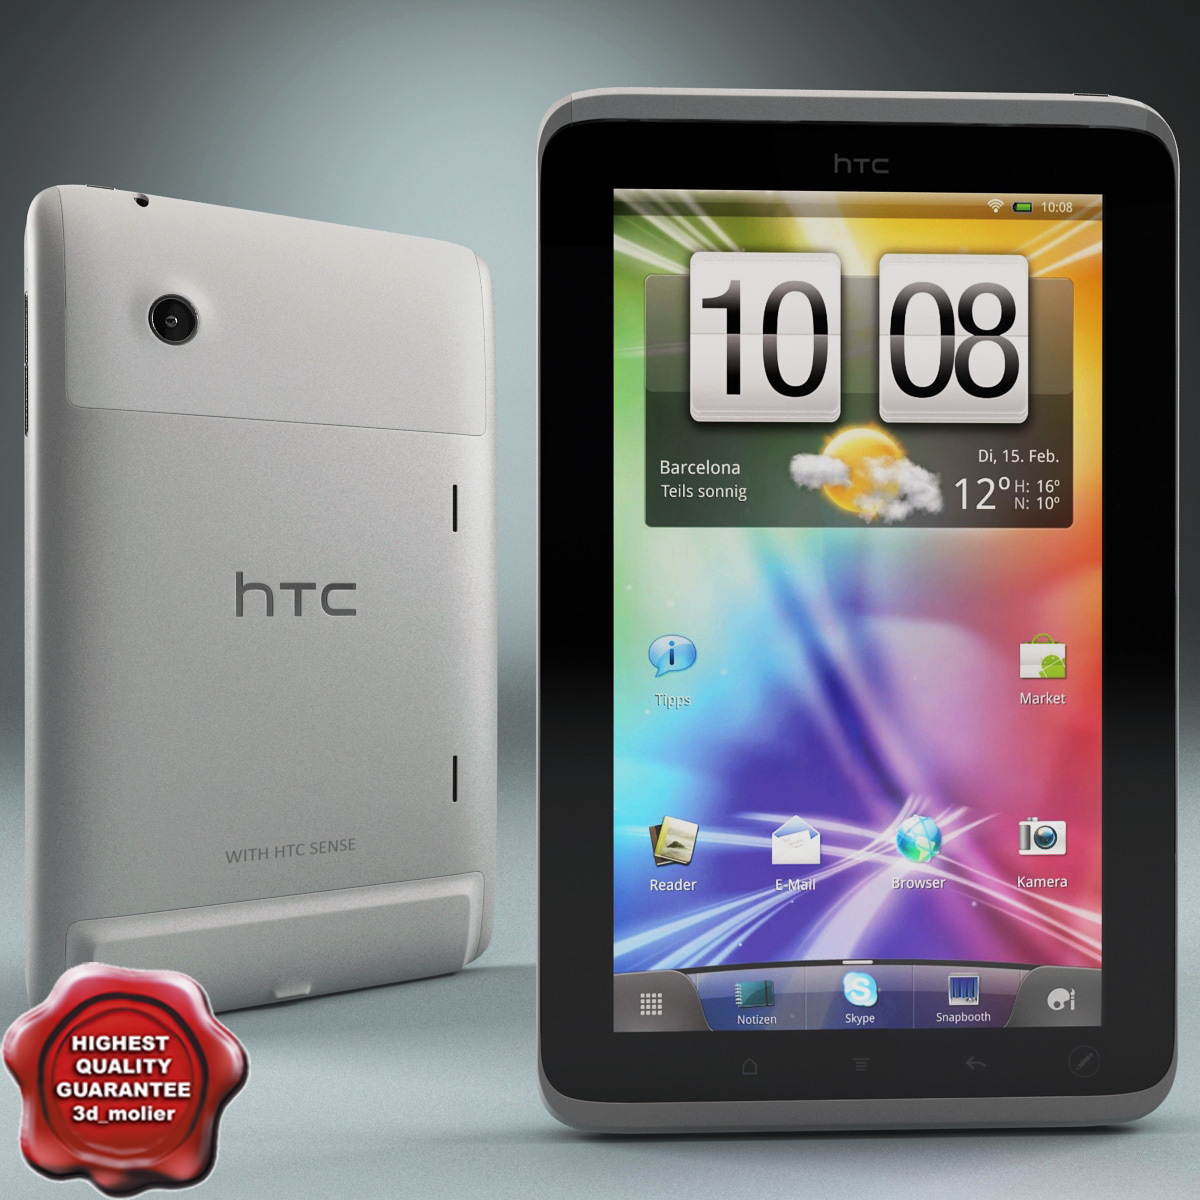 HTC_Flyer_Tablet_00.jpg